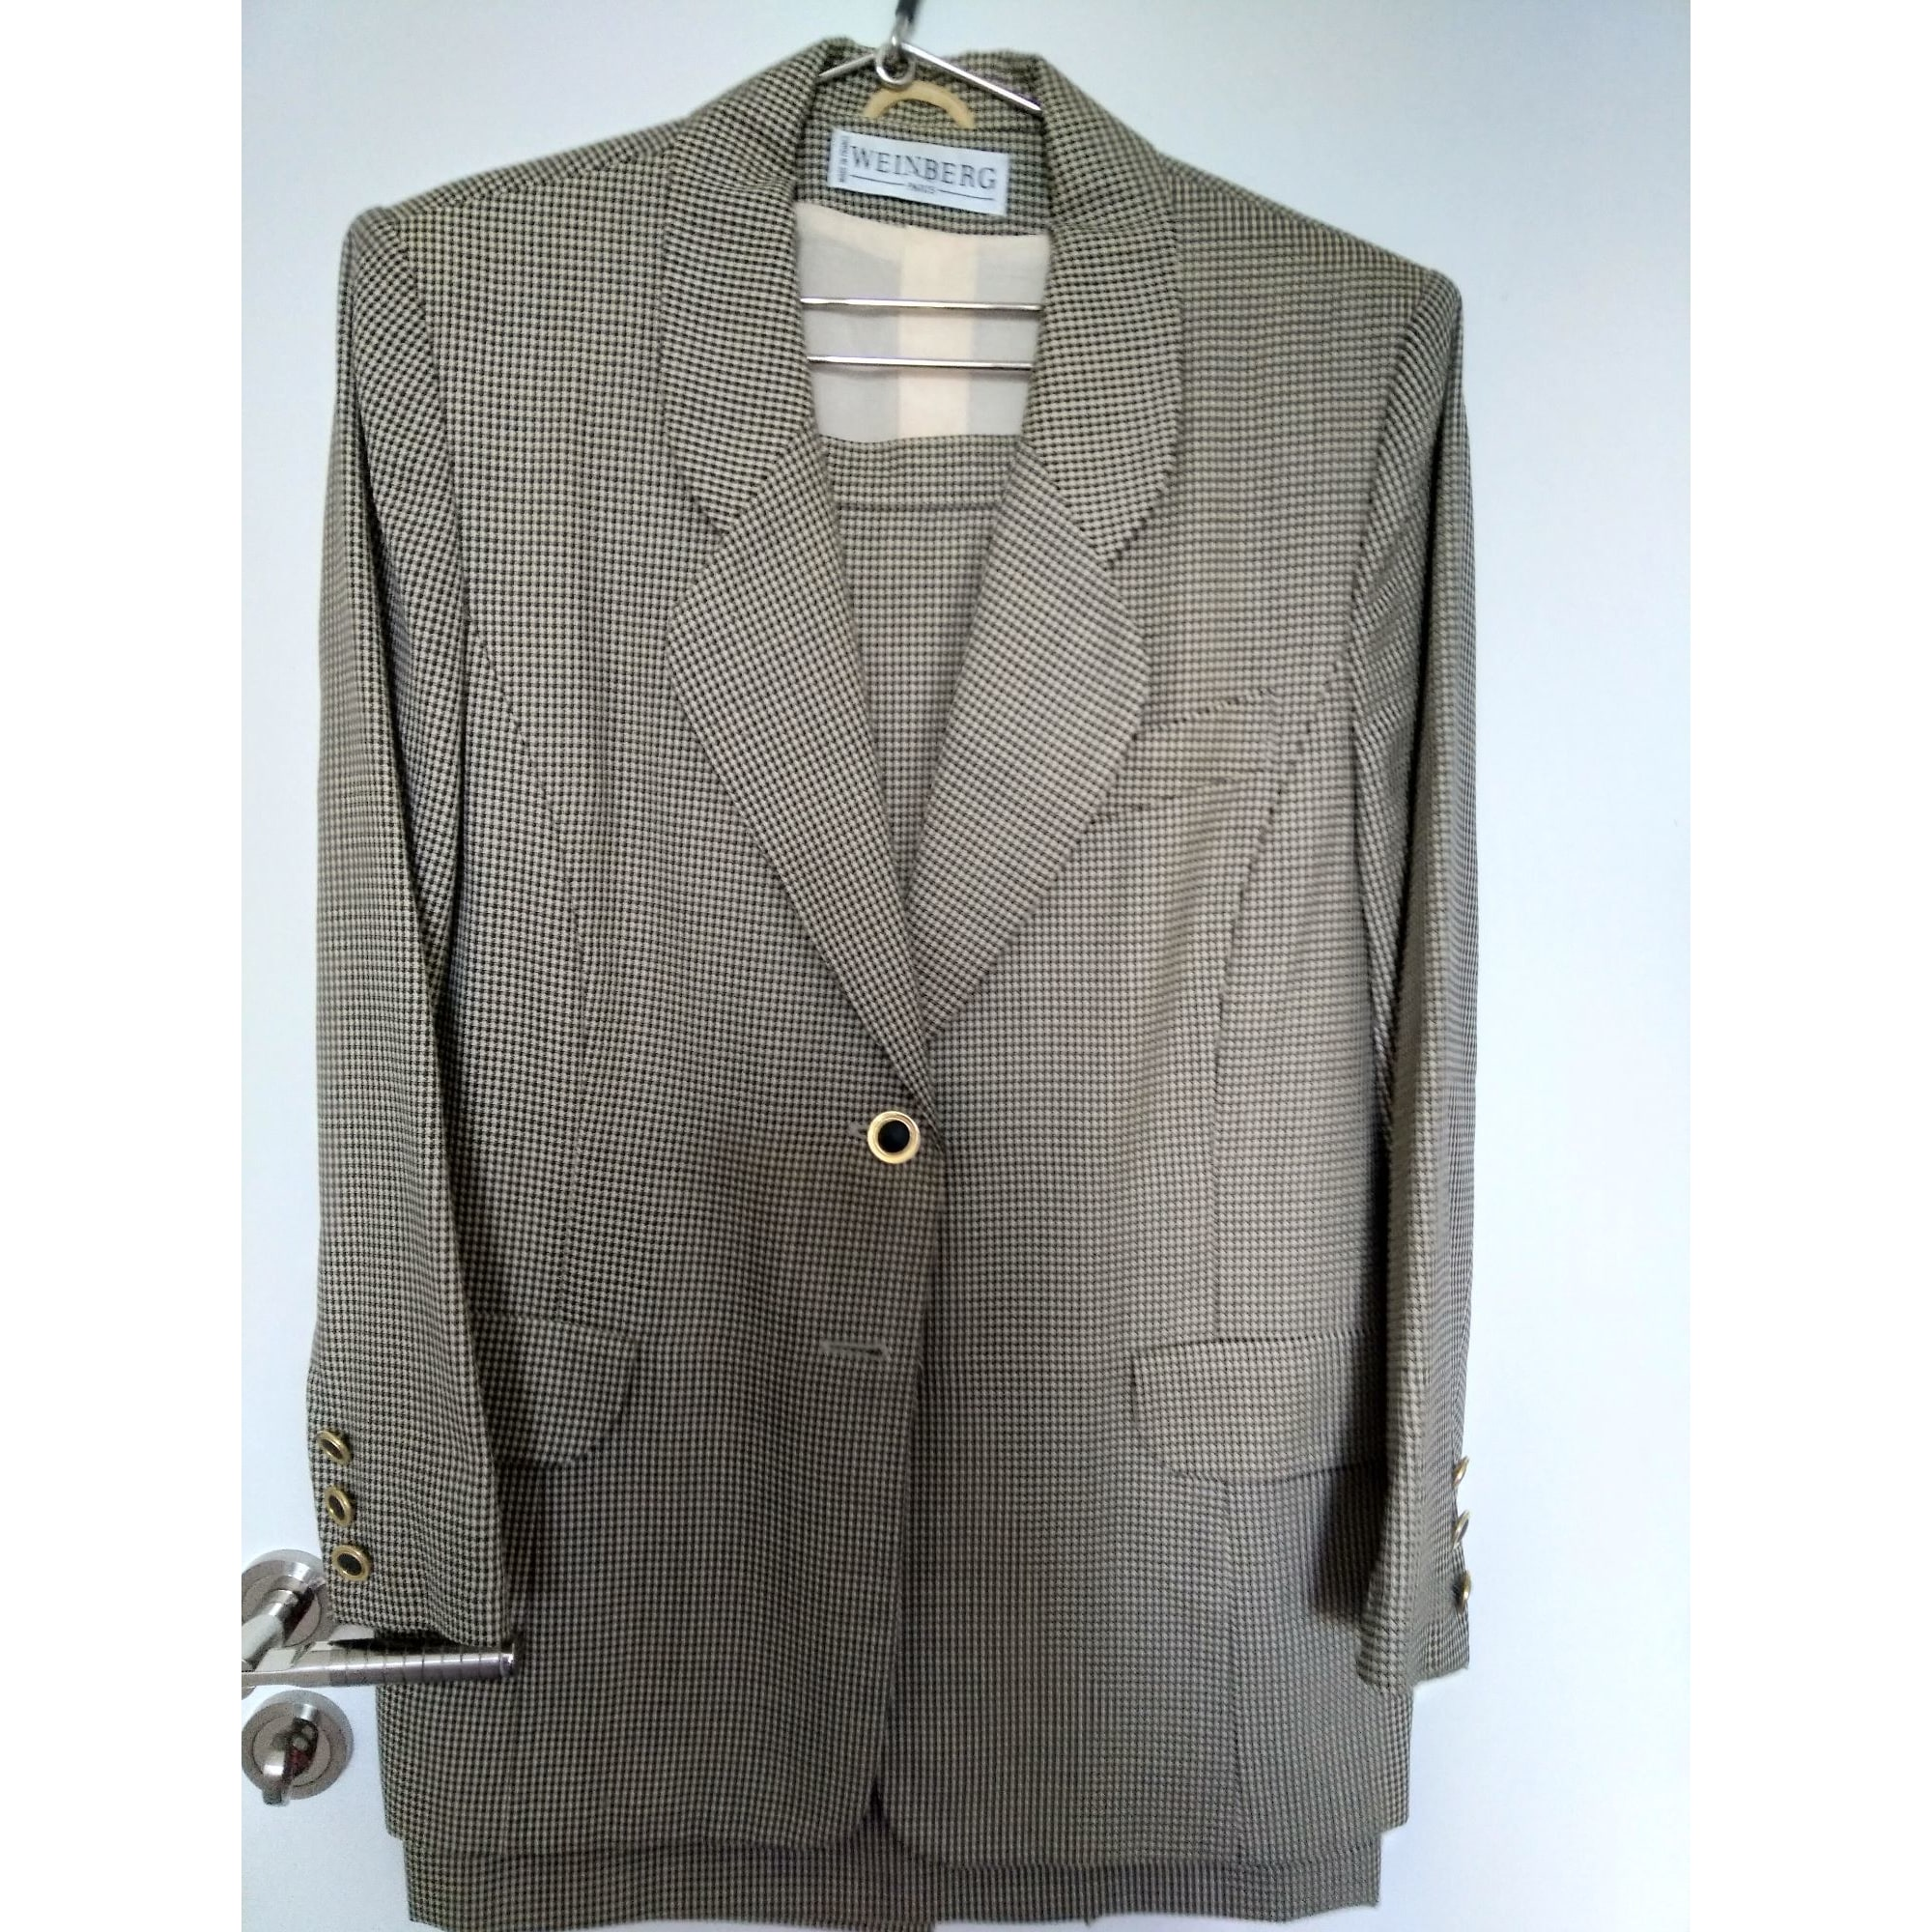 Tailleur jupe WEINBERG Gris, anthracite